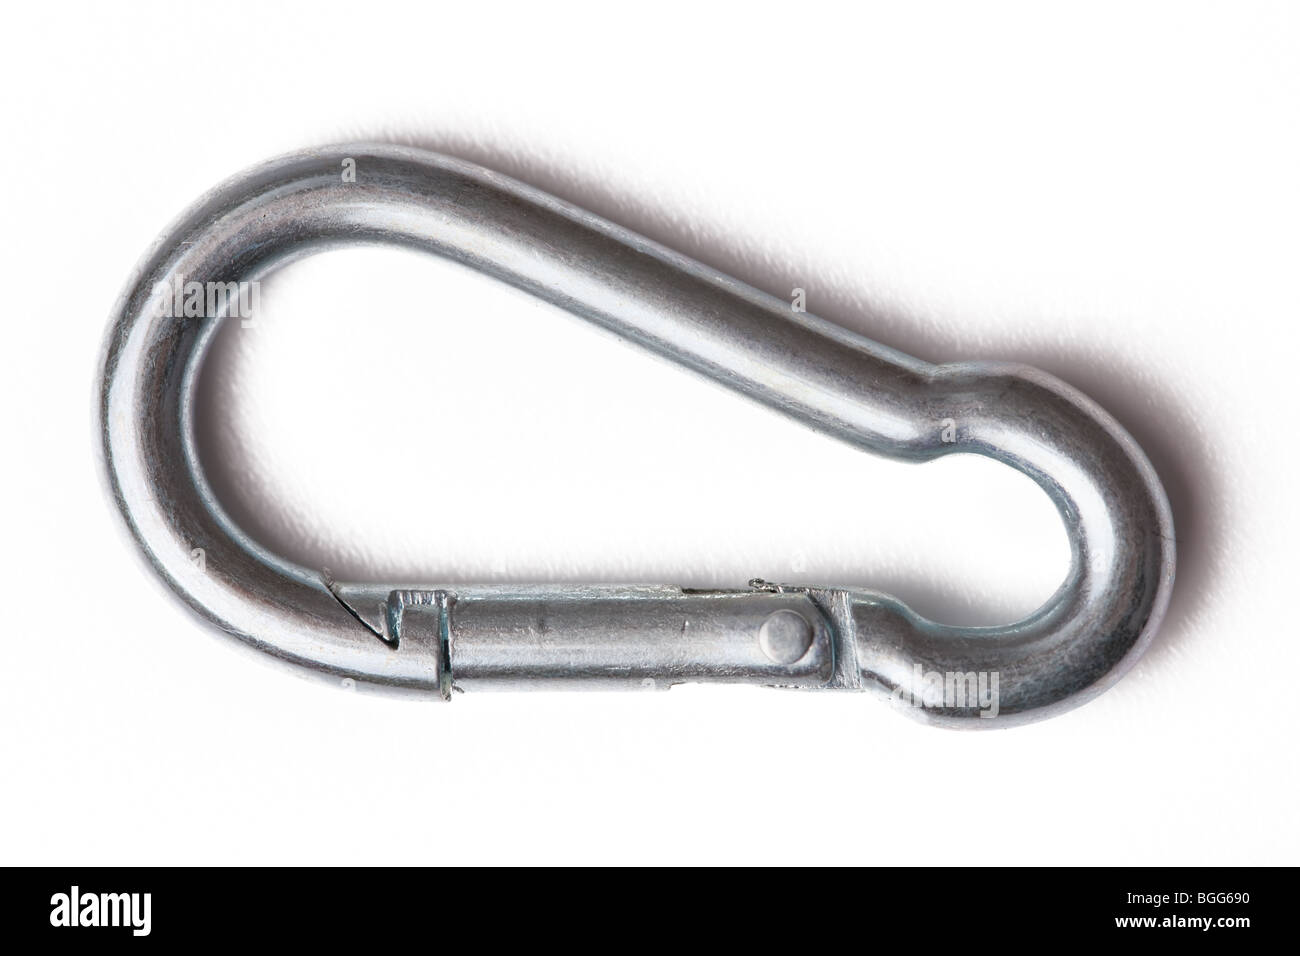 metal climber carabiner on white background - Stock Image